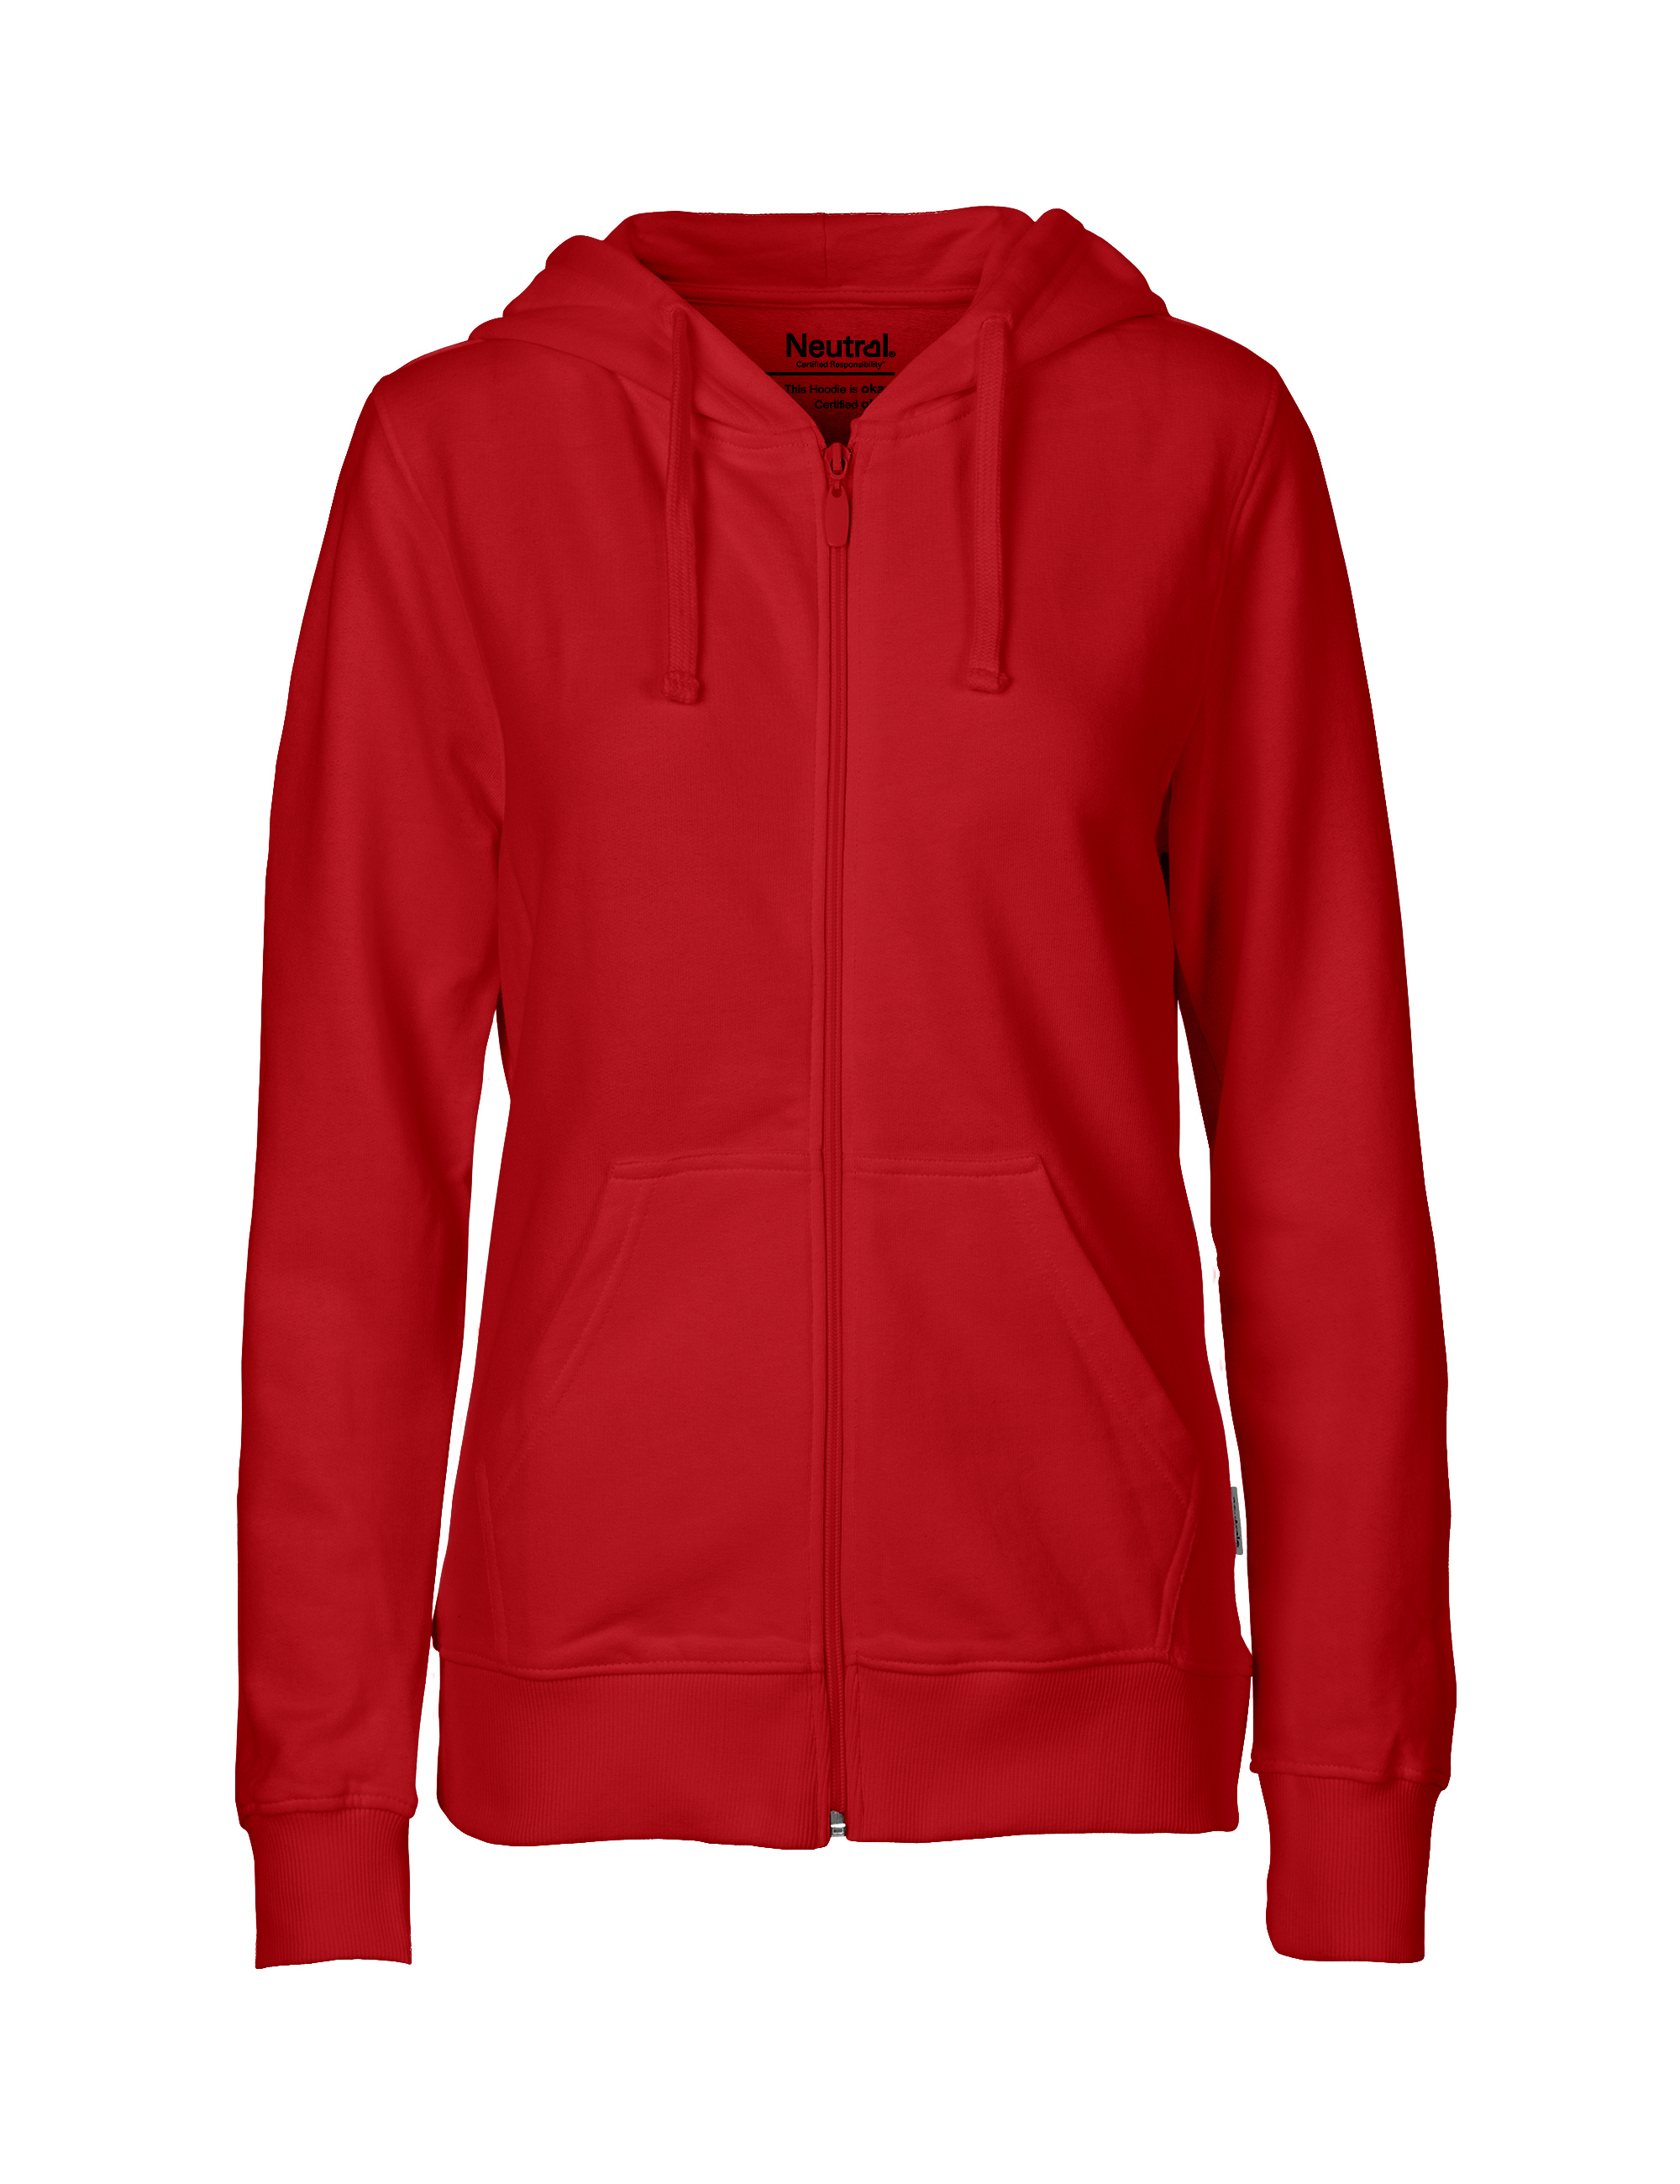 O83301 Ladies Hoodie w. Zip i Red